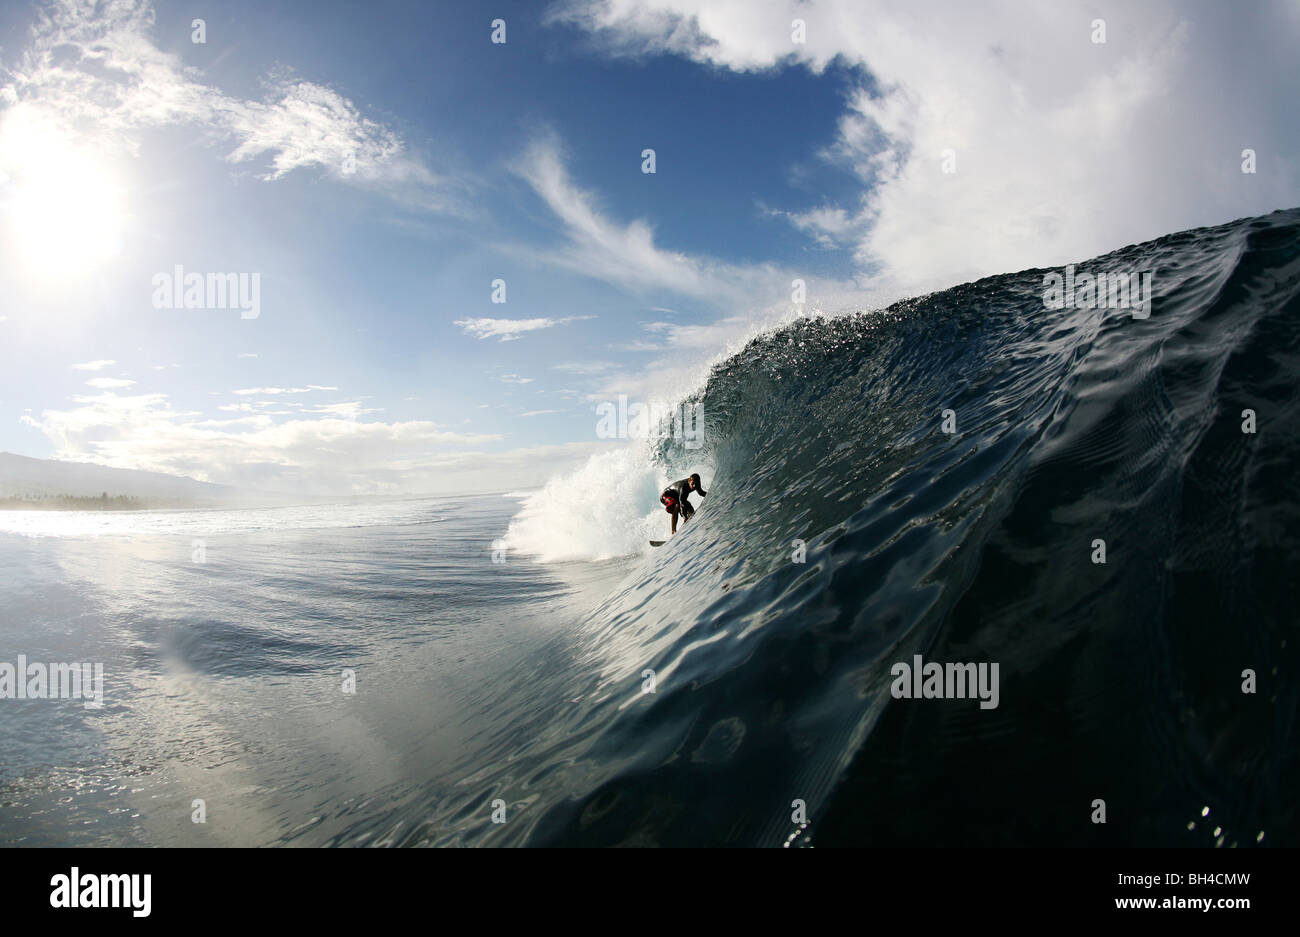 A surfer enters a barrel wave at Maninoa, Upolu, Samoa. - Stock Image